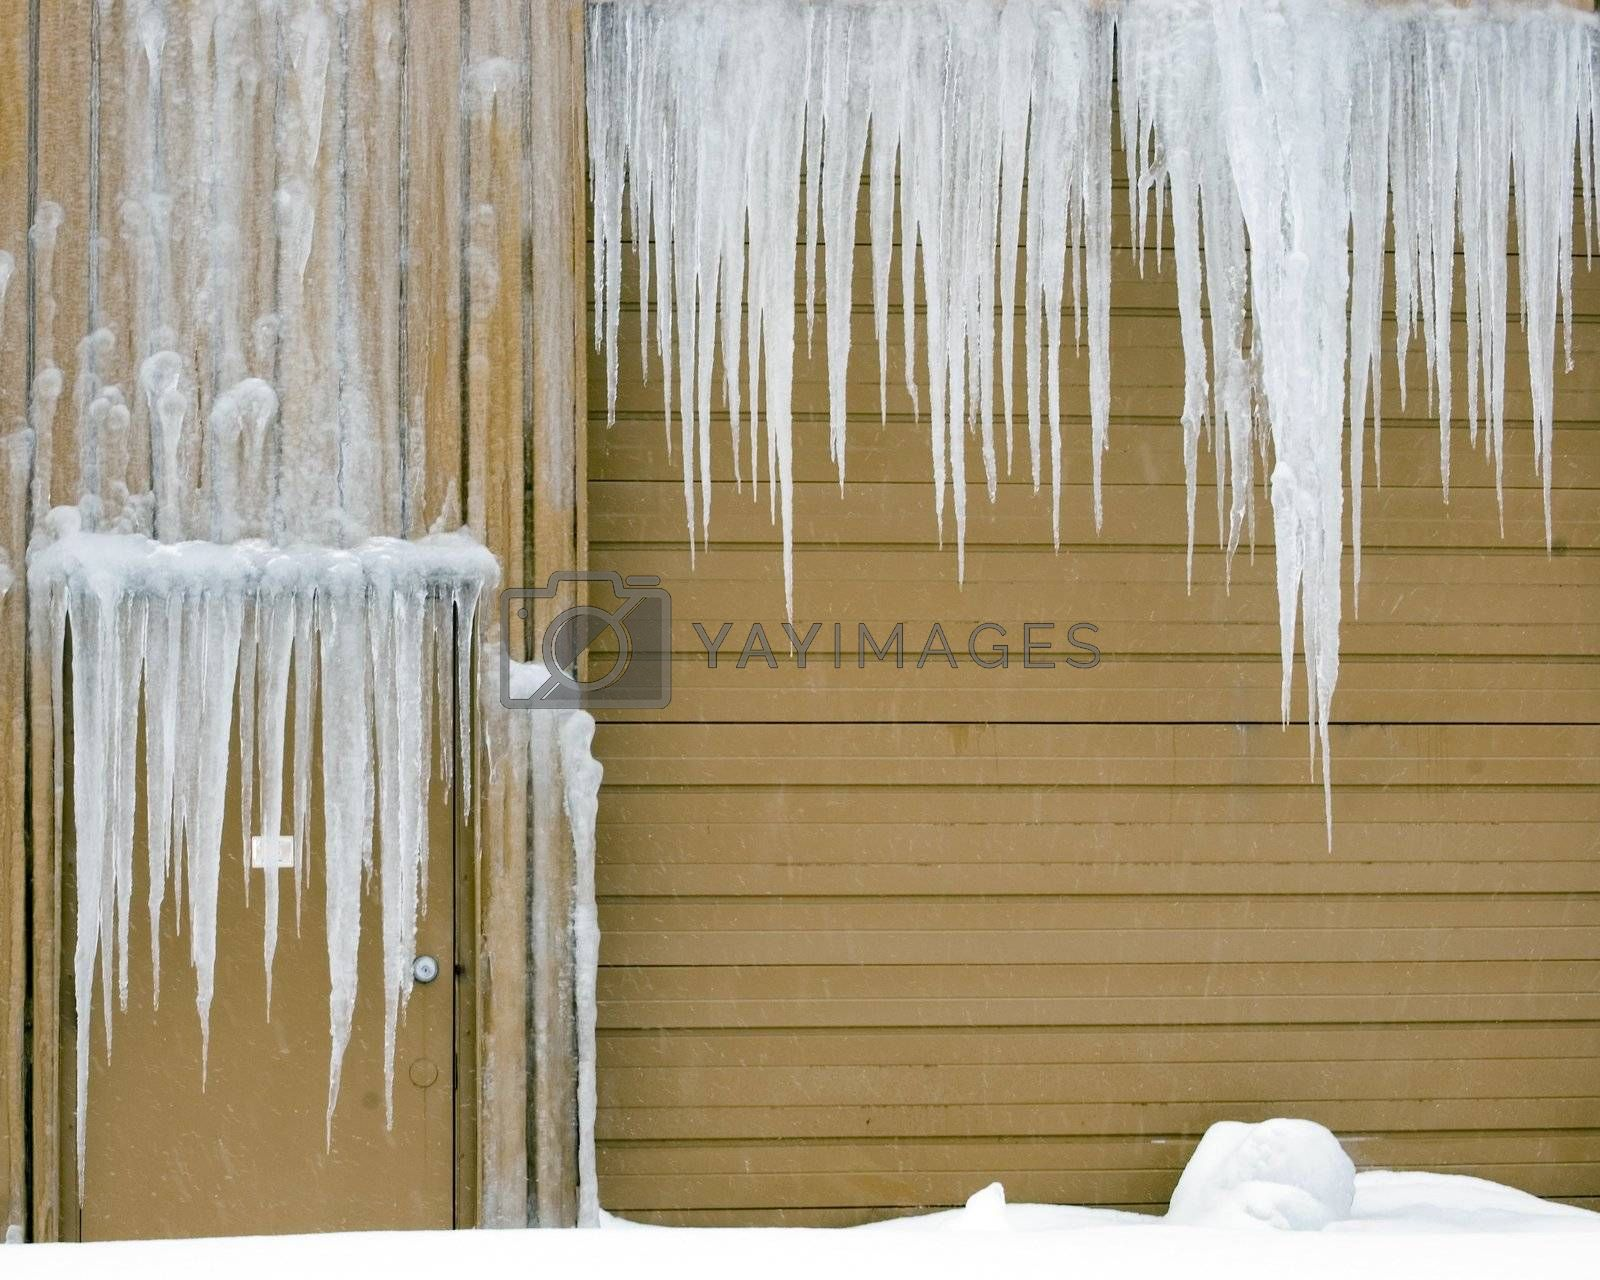 Icicles hanging down on a warehouse door and truck entrance.